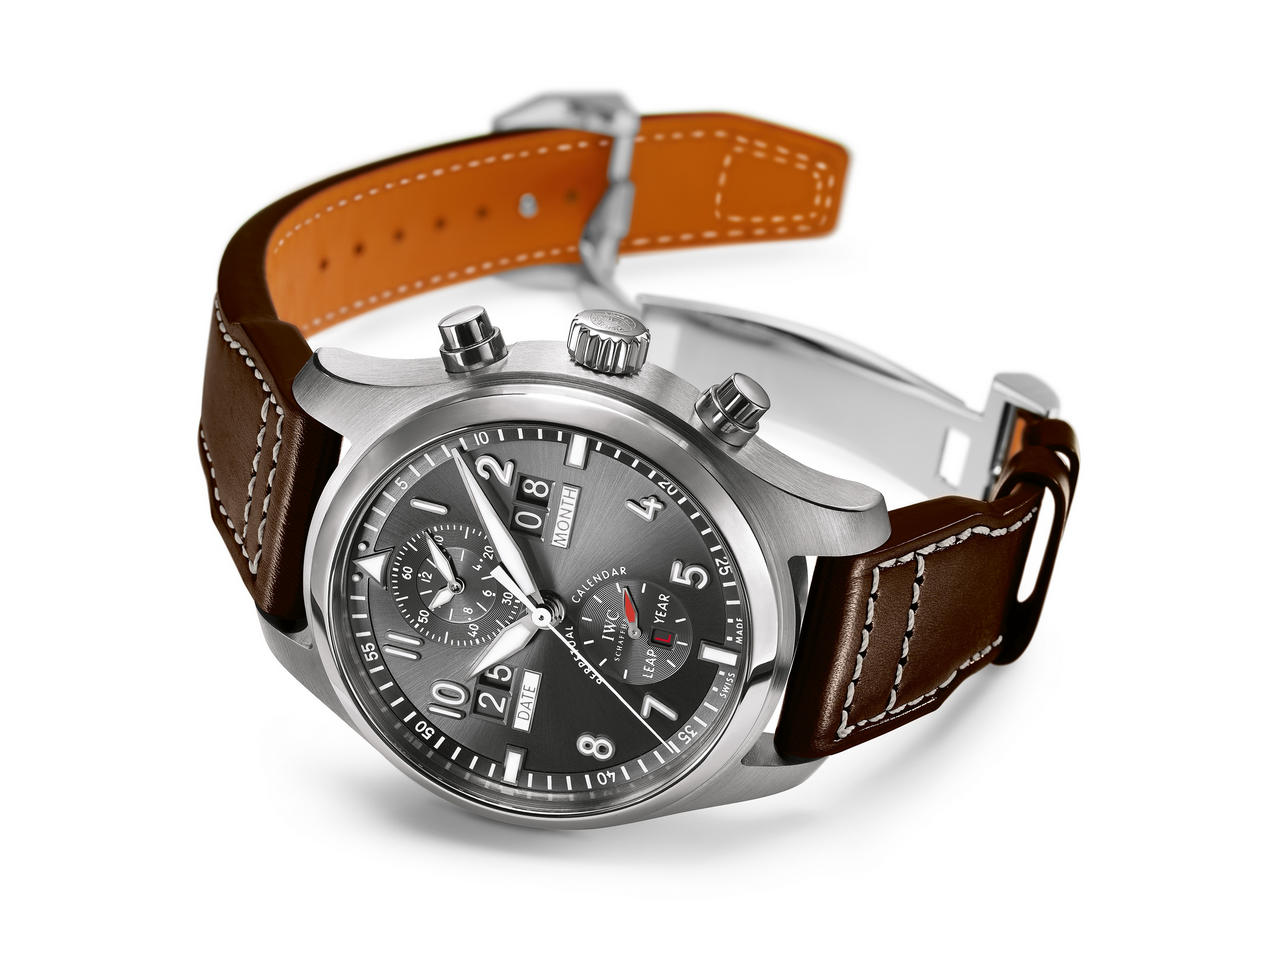 IWC-Big-Pilot-Watch-Perpetual-Calendar-Digital-Date-Month-Spitfire-Ref-379108_2